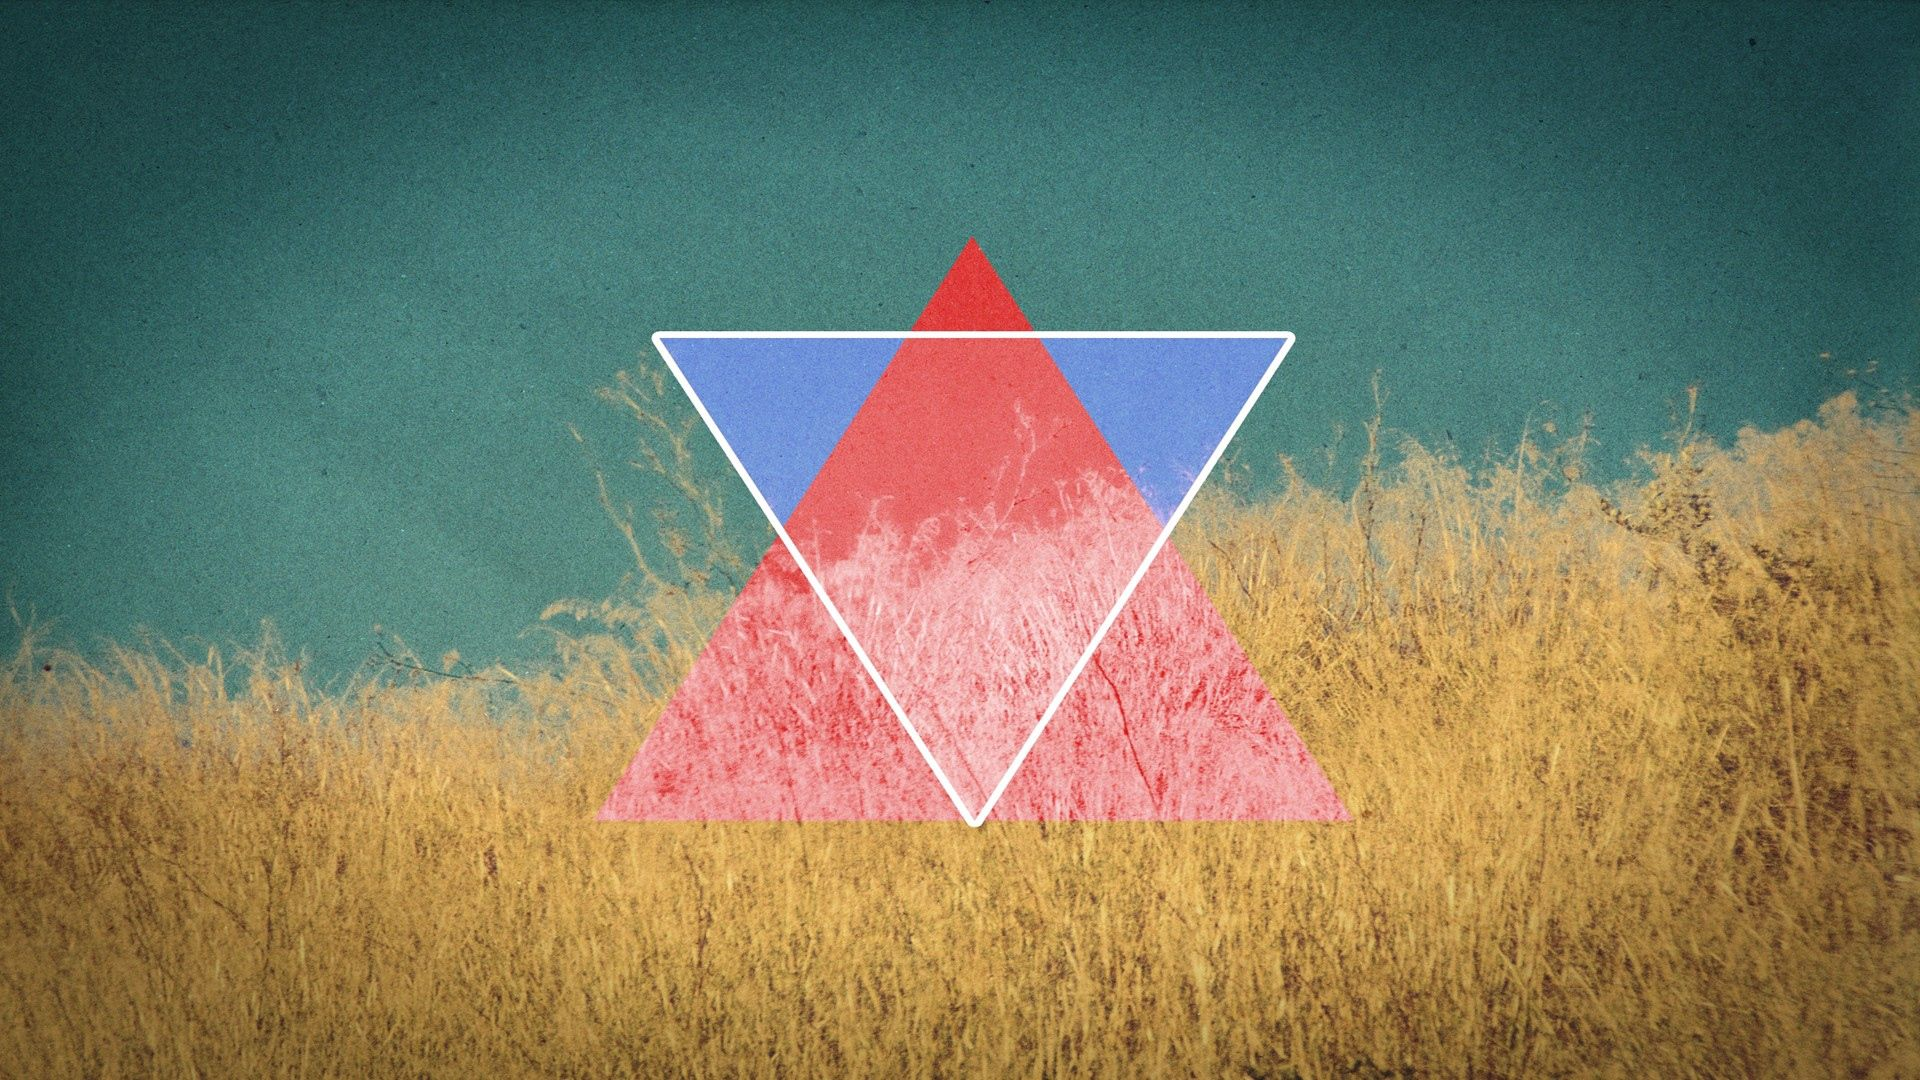 52745 download wallpaper Abstract, Grass, Light, Light Coloured, Triangle screensavers and pictures for free